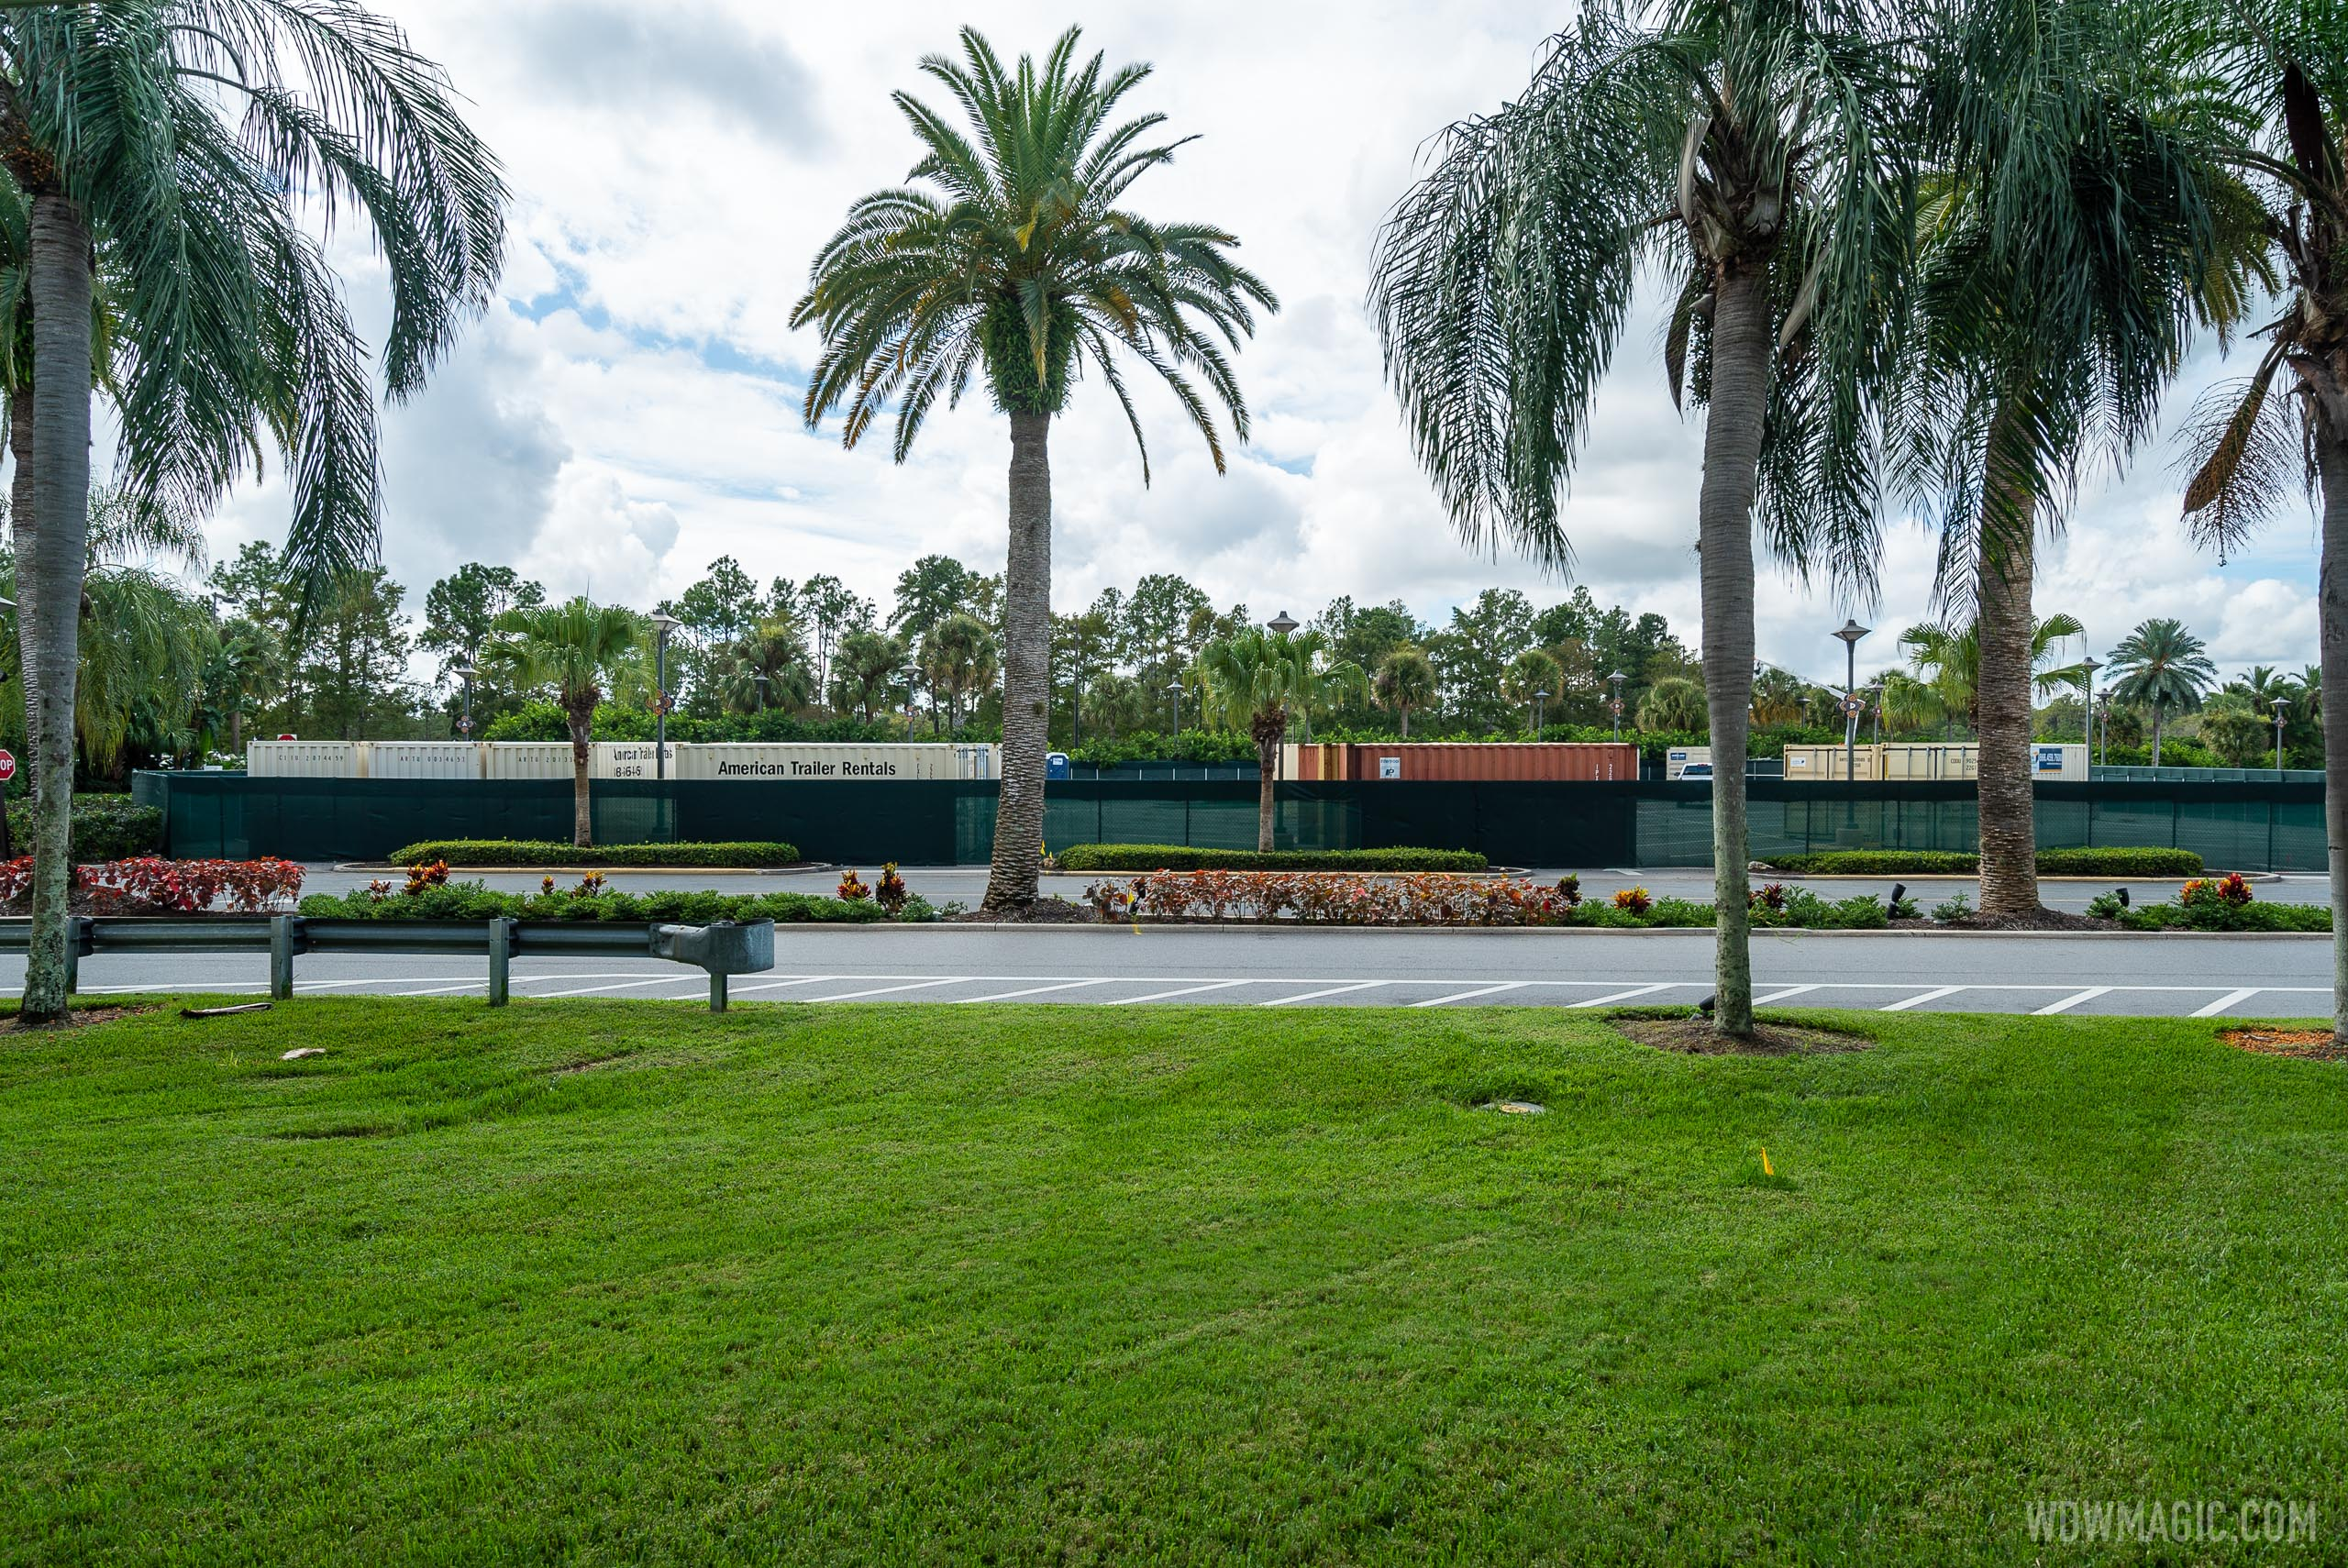 Refurbishment containers at Disney's Polynesian Resort